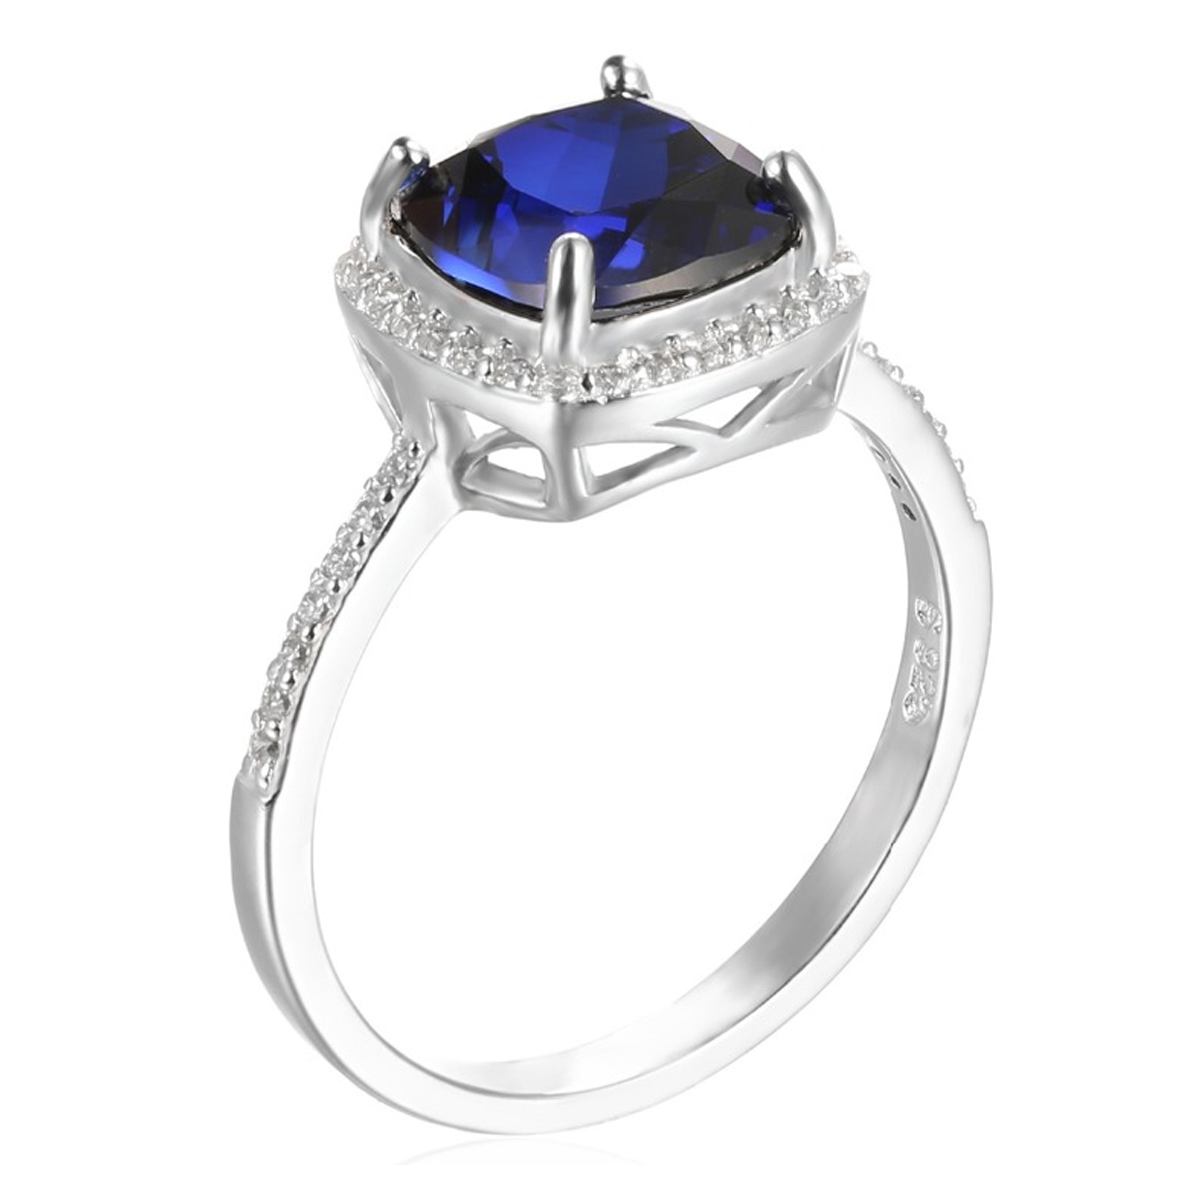 cushion sapphire en hover lab ring to kaystore cut sterling kay zoom created silver mv zm